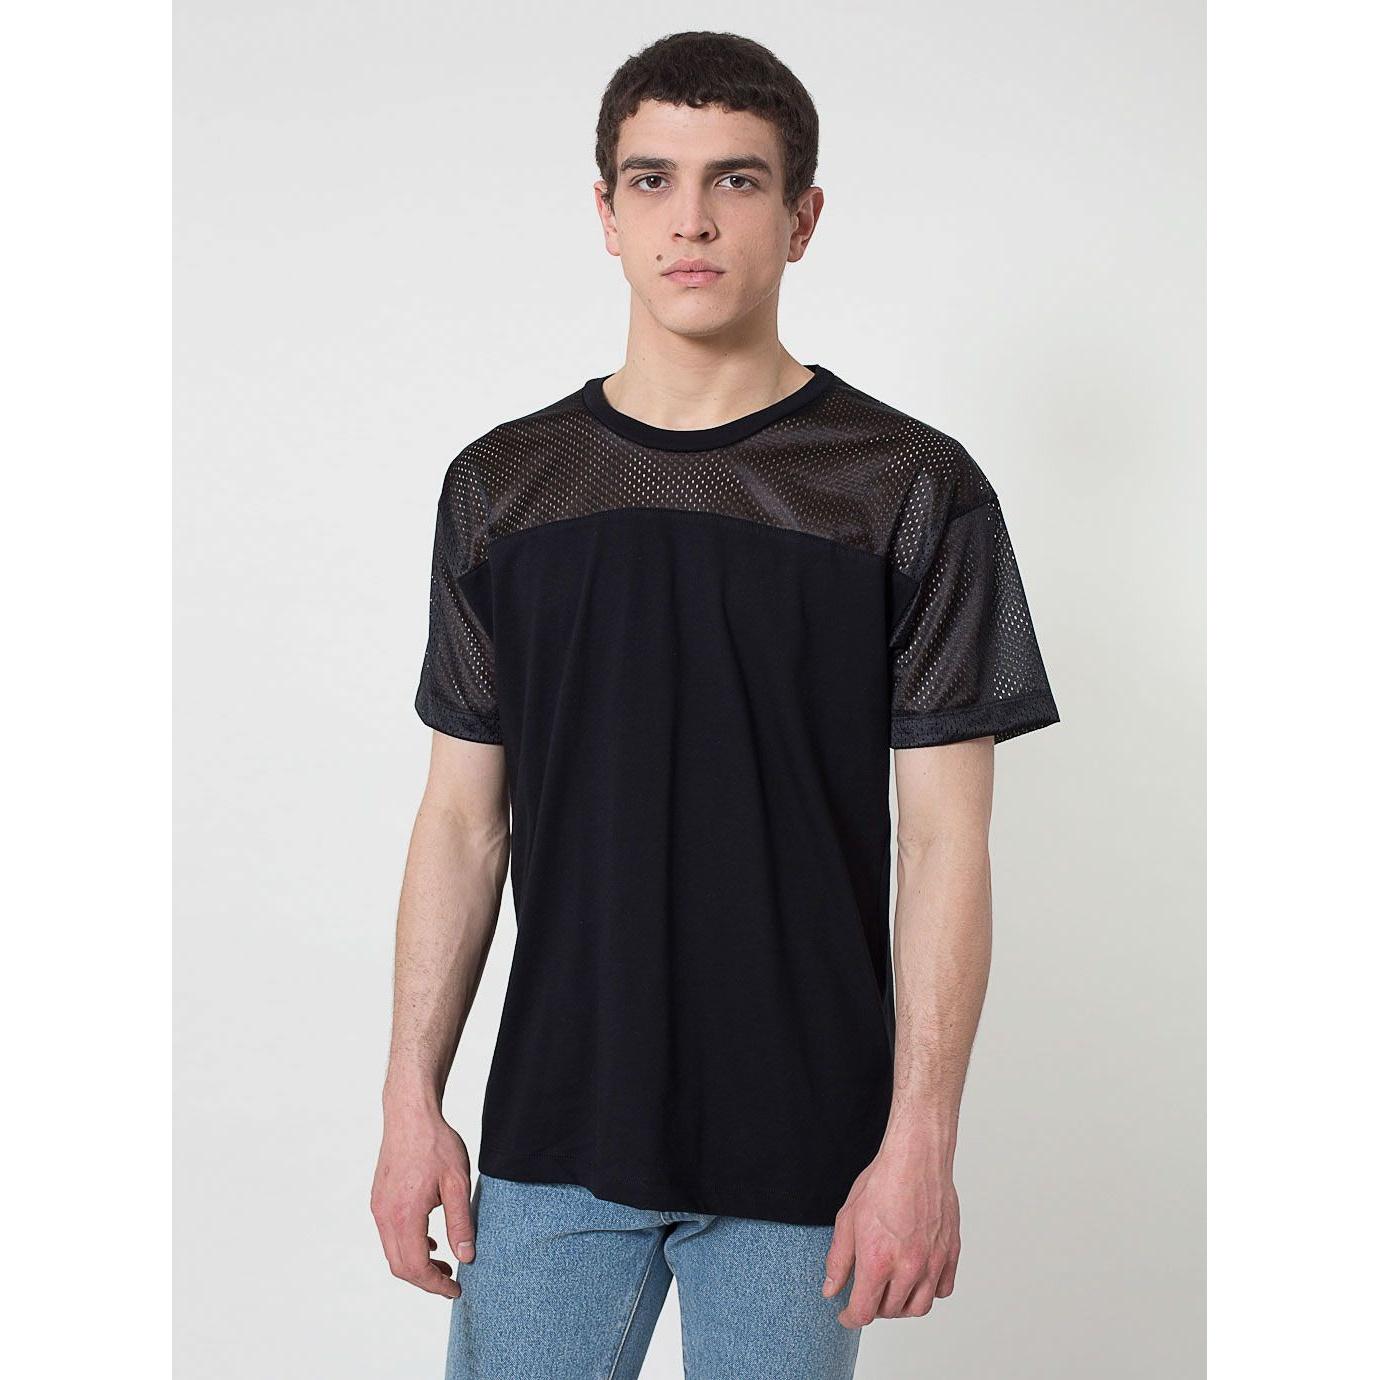 American apparel mens short sleeve contrast mesh panel t for Men s fashion short sleeve shirts